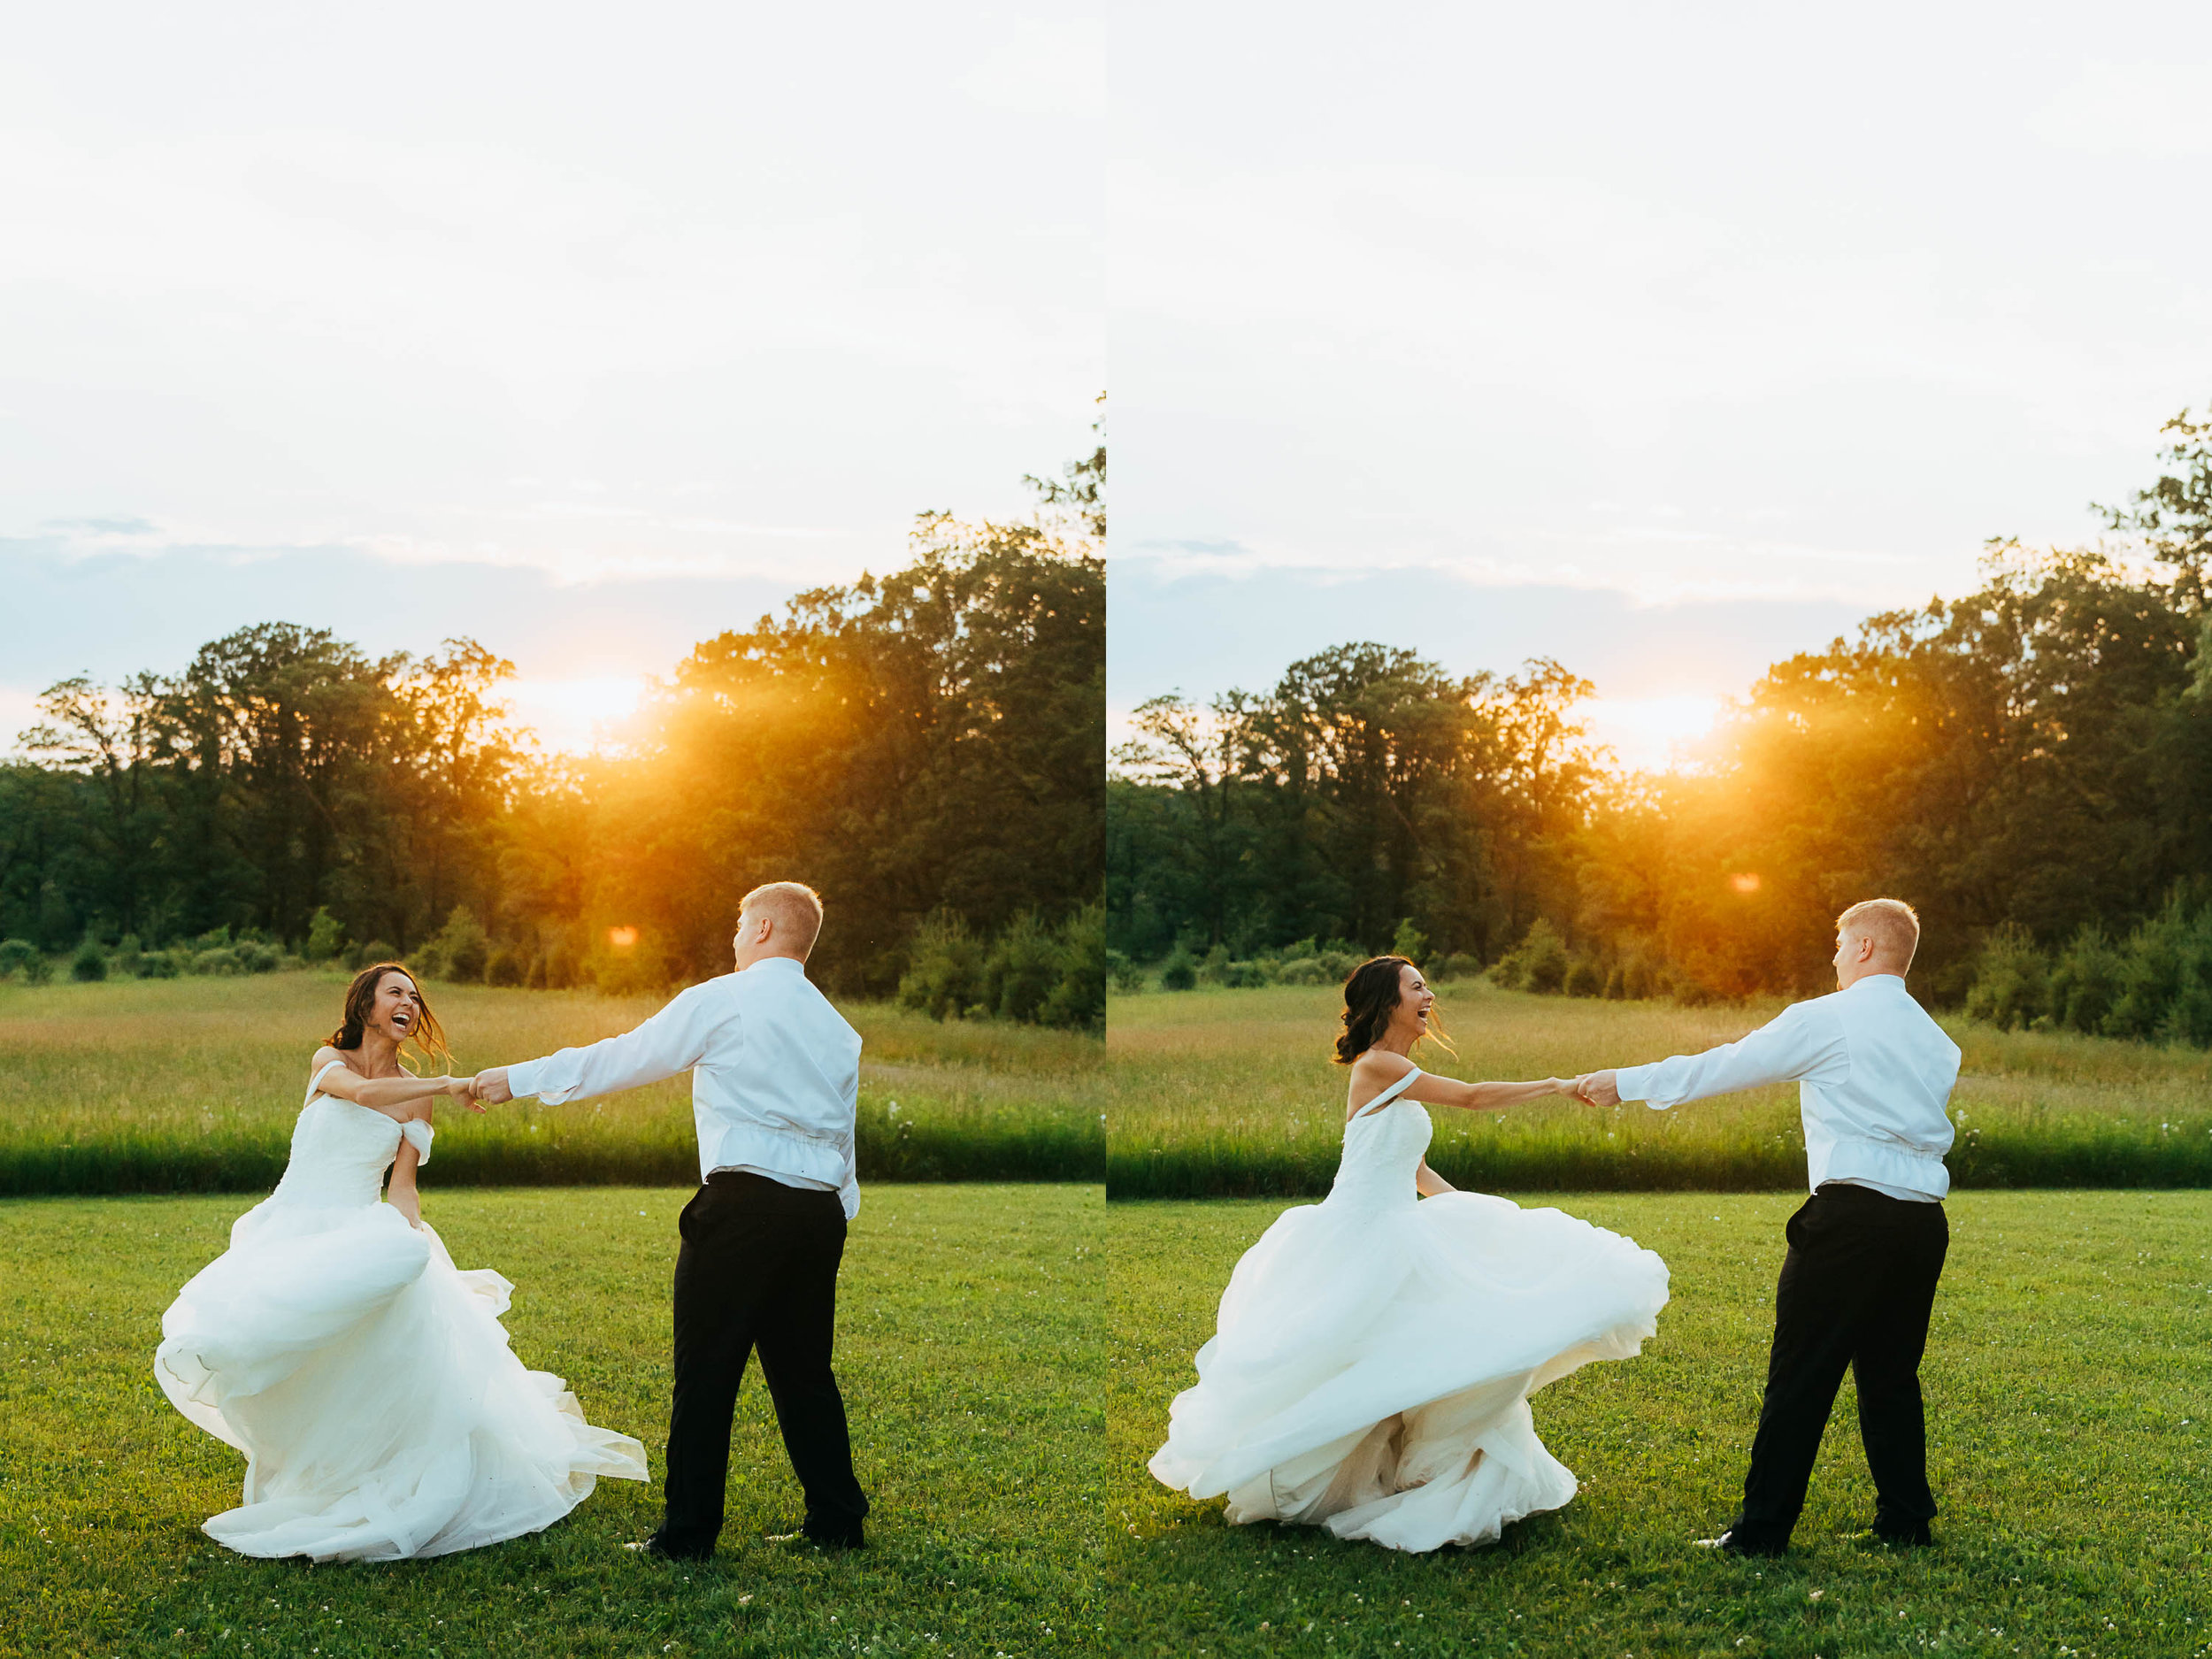 Minnesota_Bride_Groom_Portrait_Sunset_Portraits_Vineyard5.jpg